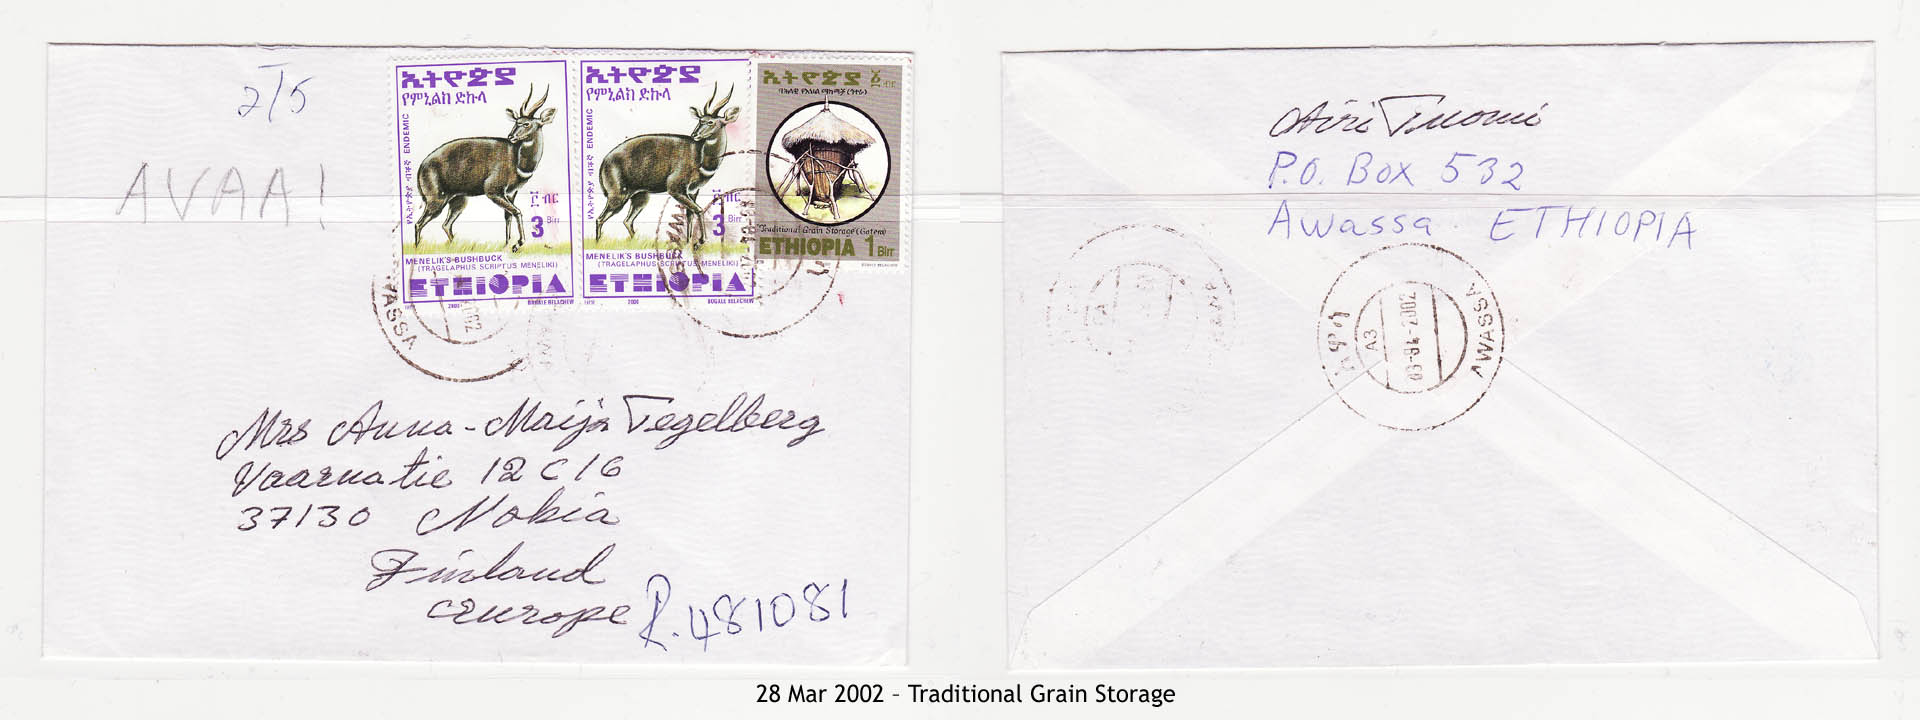 20020328 – Traditional Grain Storage